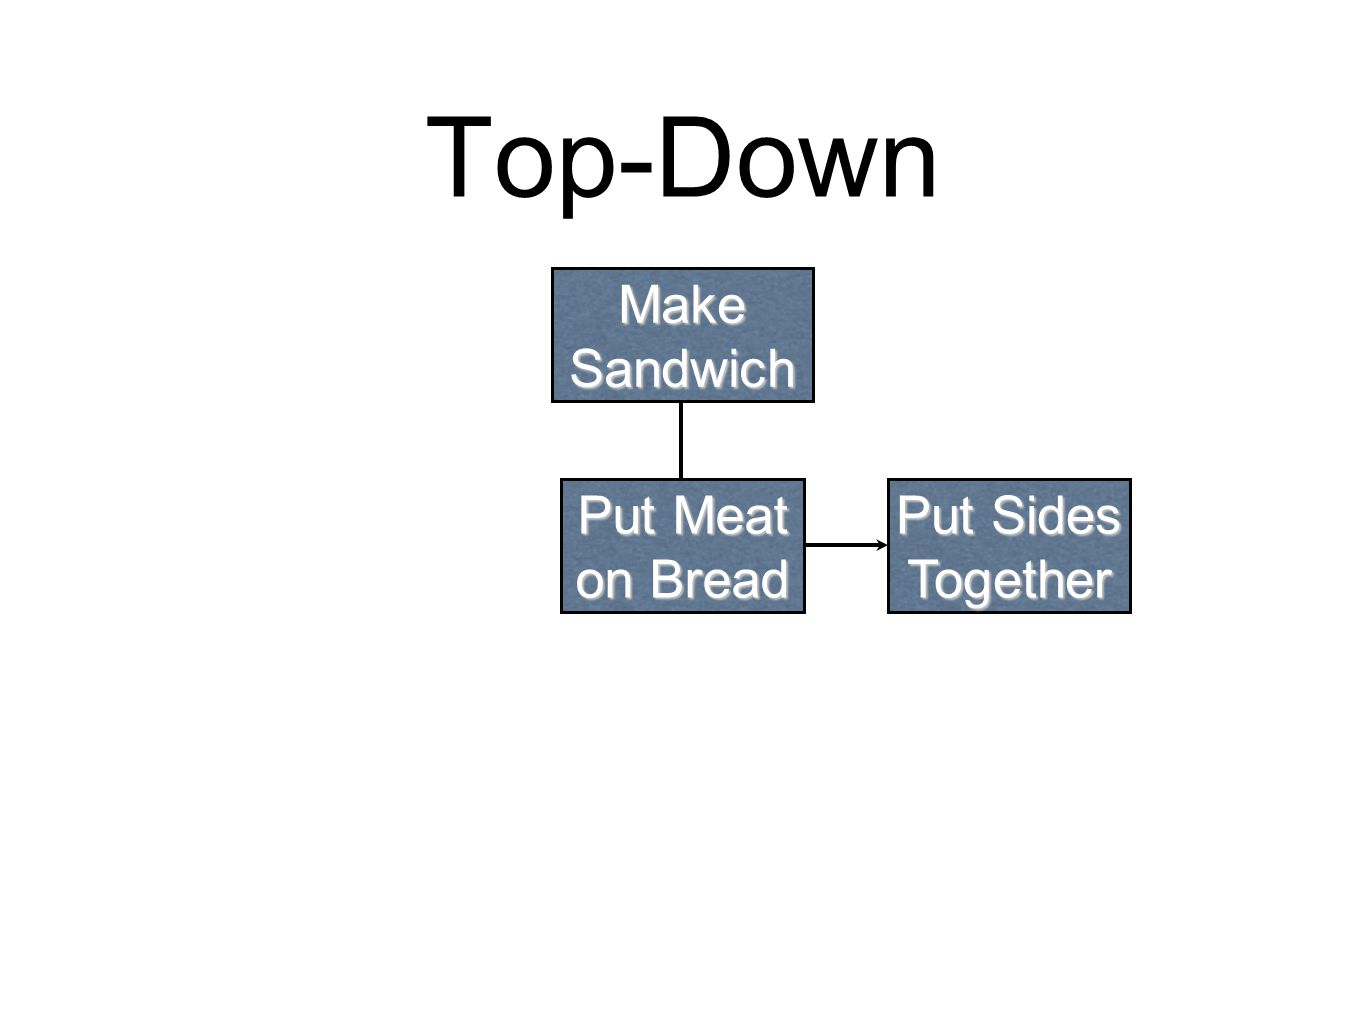 Top-Down Make Sandwich Put Meat on Bread Put Sides Together